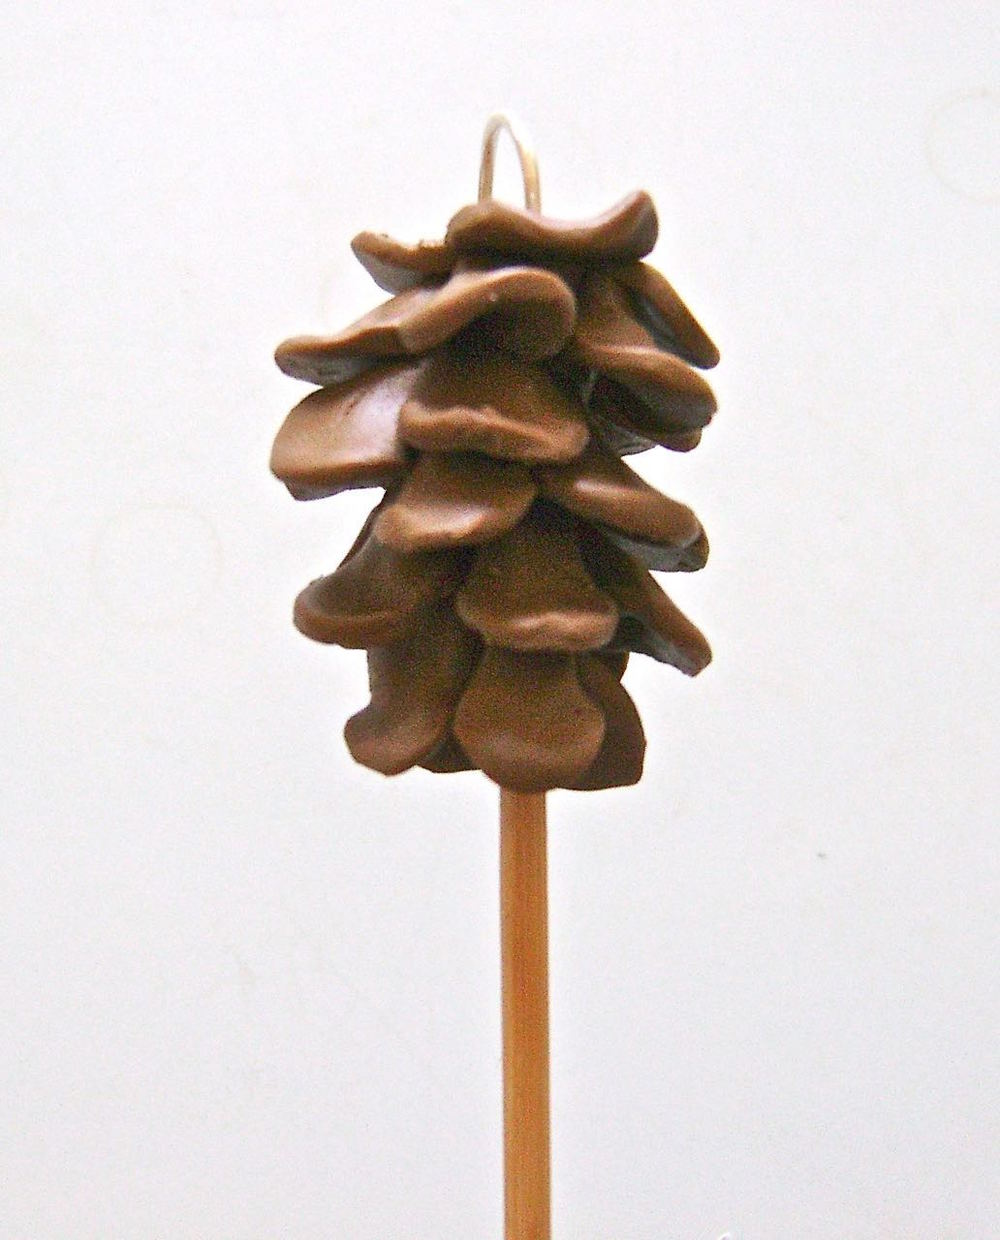 step 8 - Stick the pine cone onto a wood pick to make it easier to work with. Use another pick to lift the pine cone edges away from the teardrop core and give it fullness and shape.